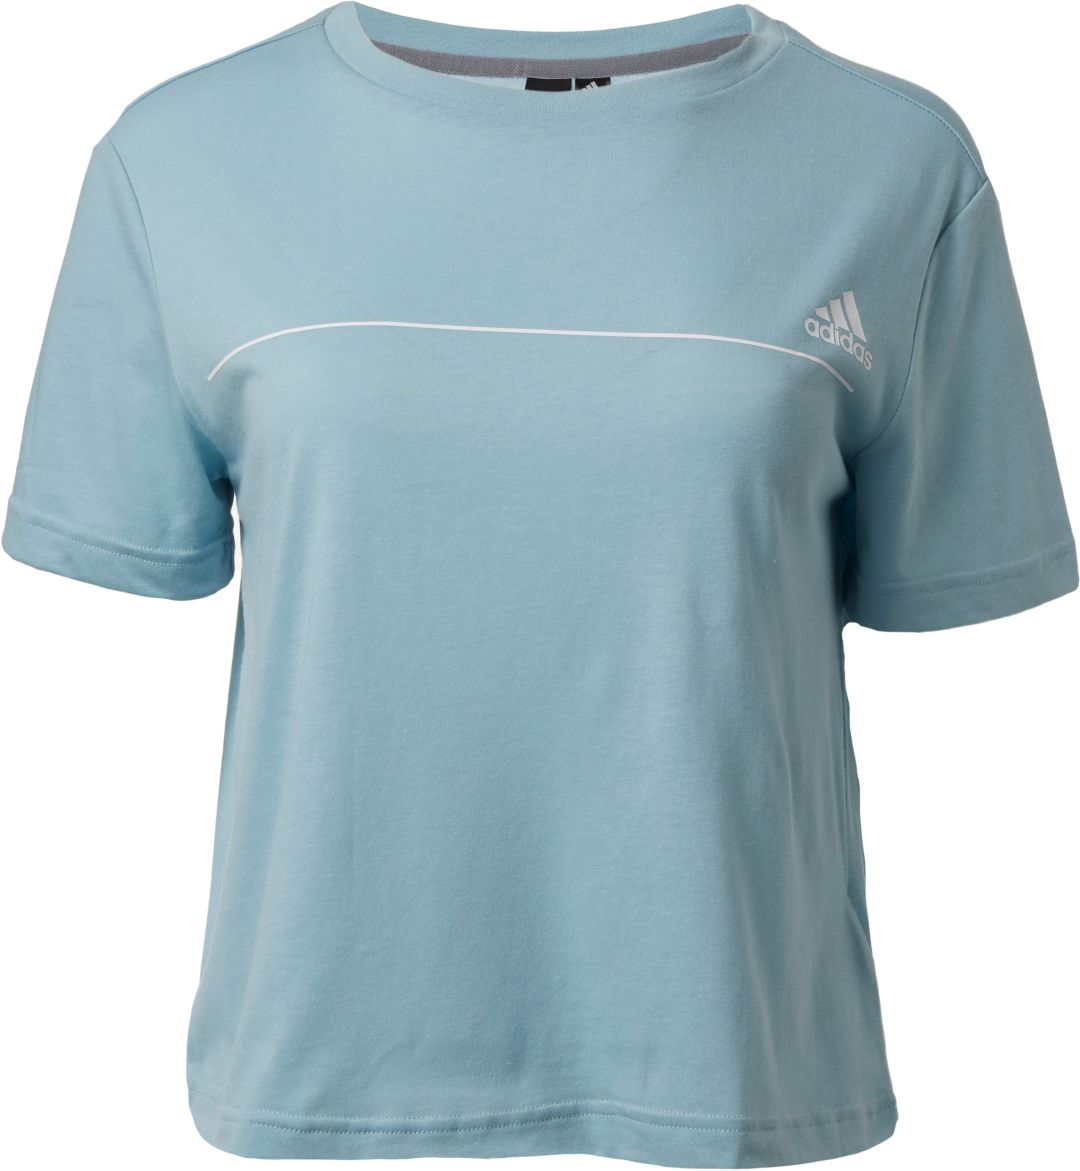 76edf709a2688 adidas Women's Essentials Line Graphic Cropped T-Shirt | DICK'S ...